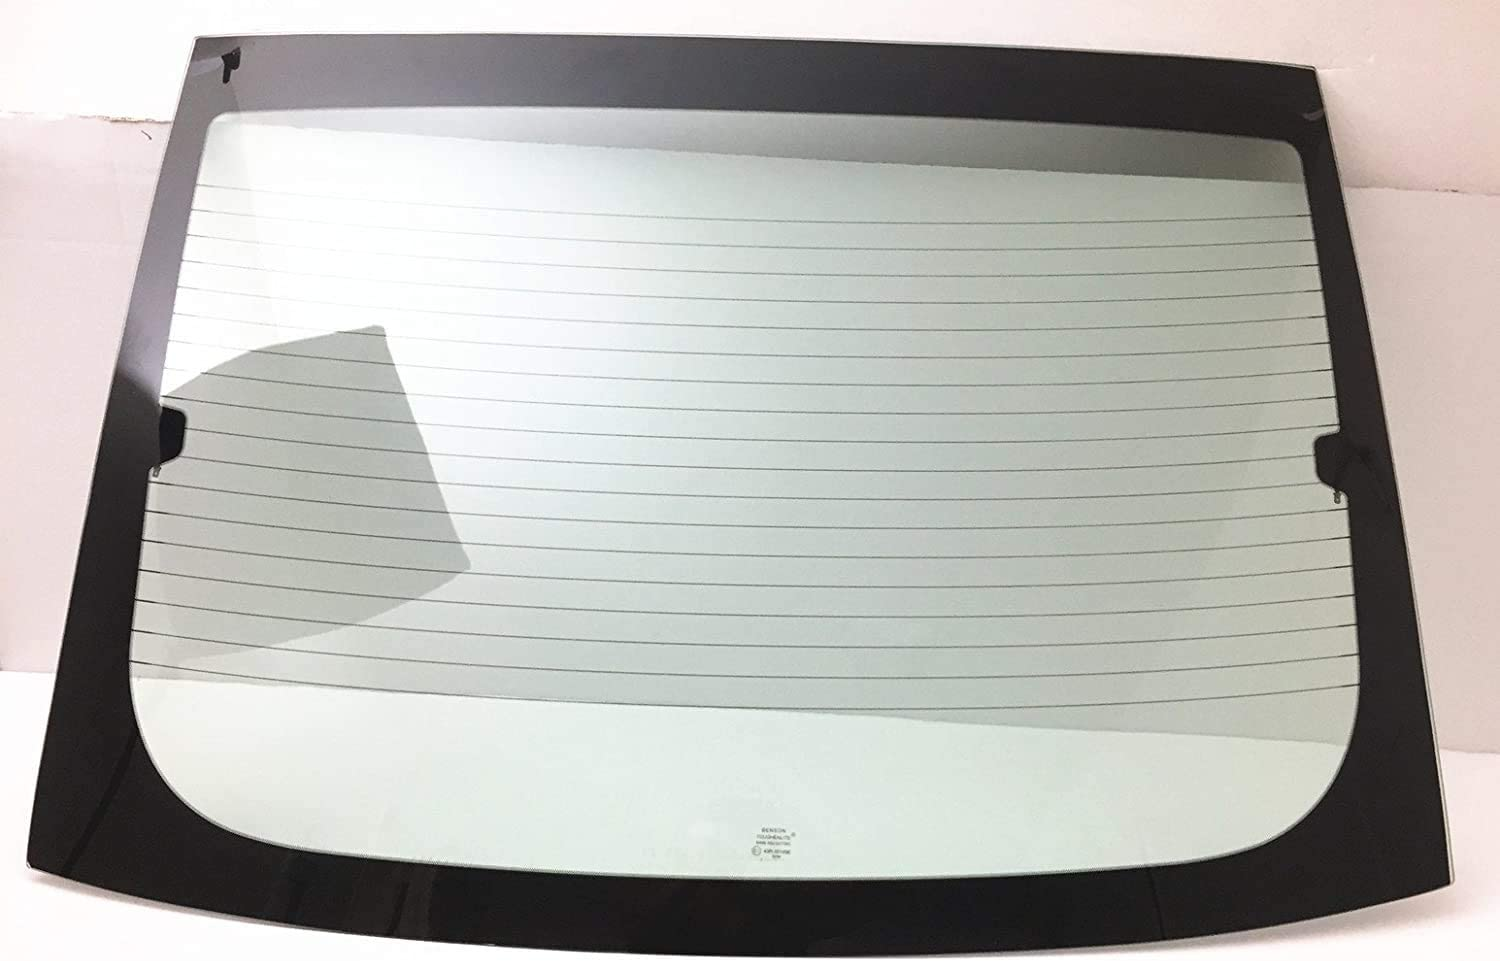 NAGD Heated High Amp Back Compatible Window Ford Nippon regular agency with Glass 1 year warranty